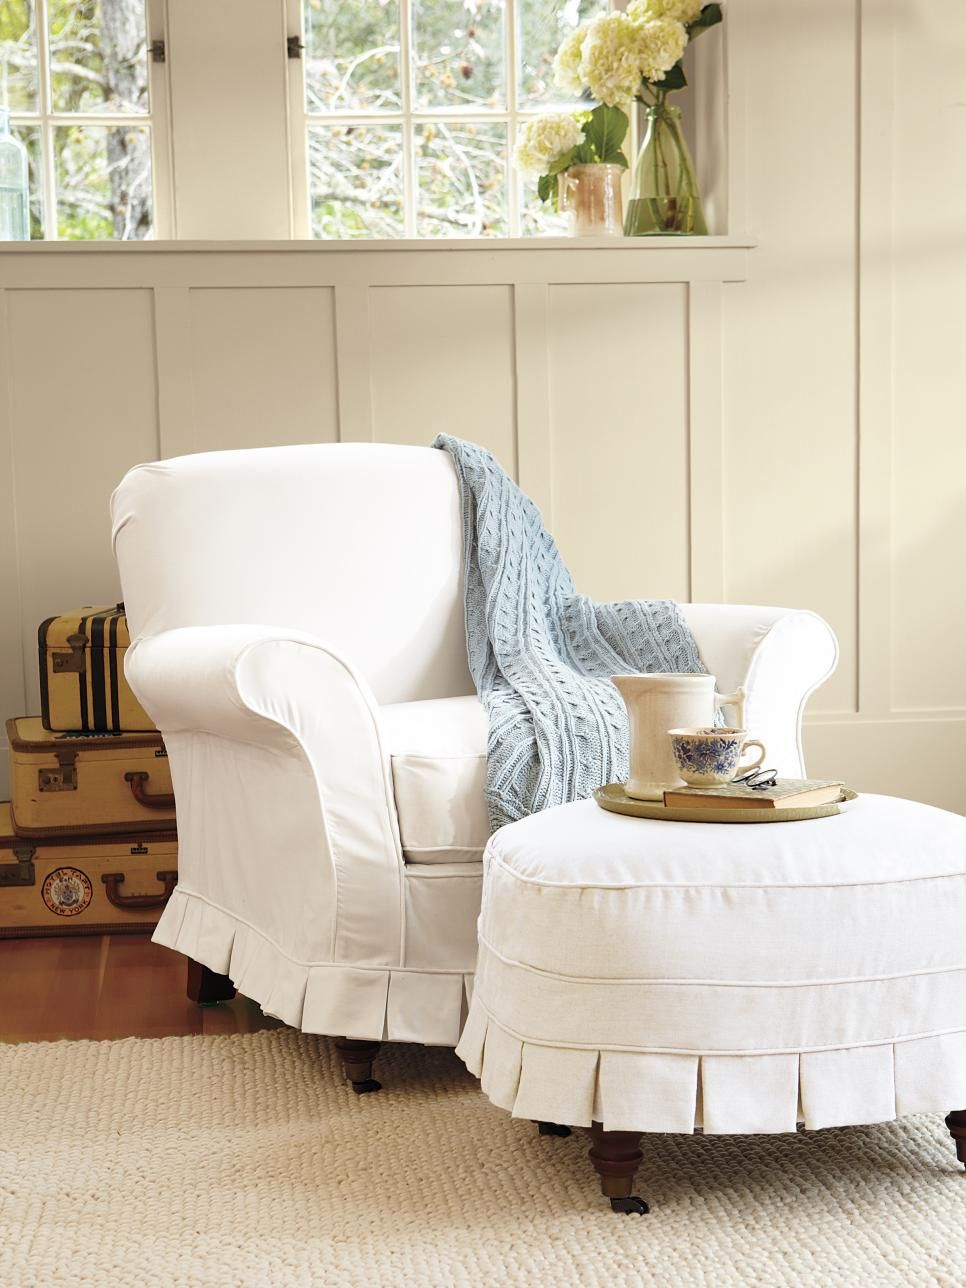 Slipcovers For Chairs Ottomans And More For The Home